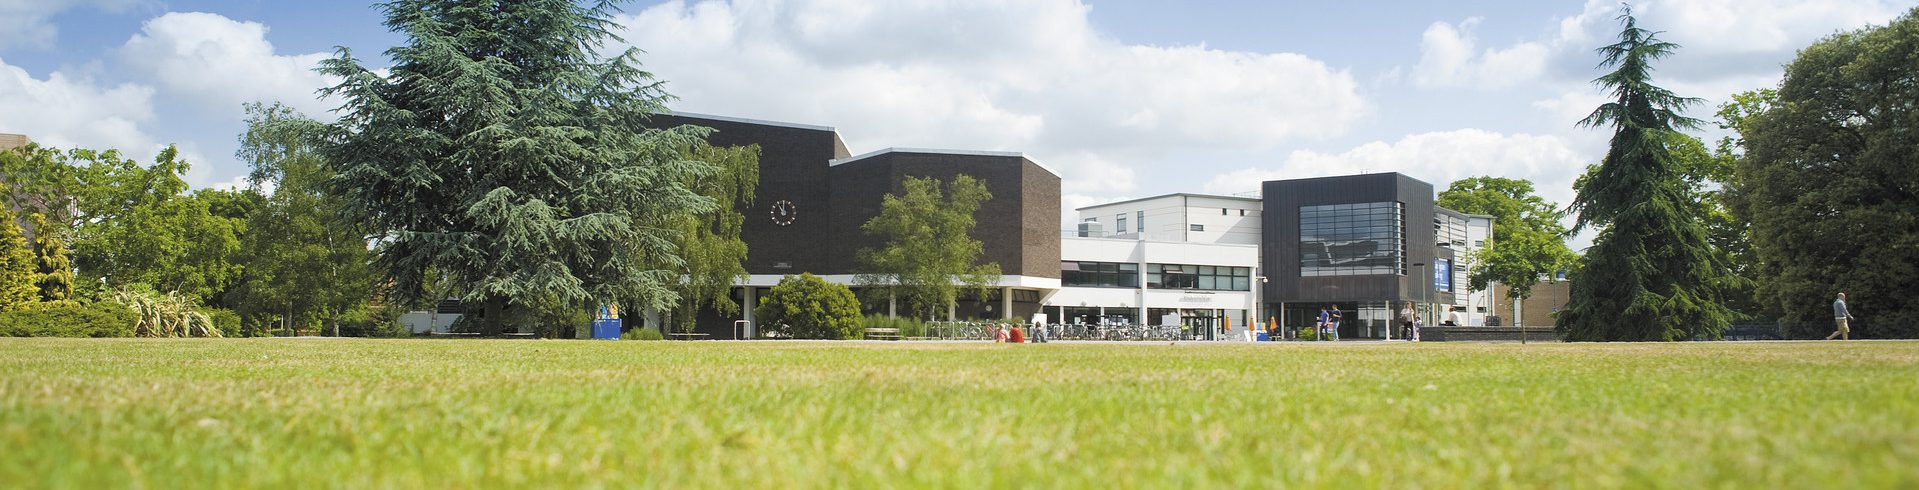 External shot of the Whiteknights campus